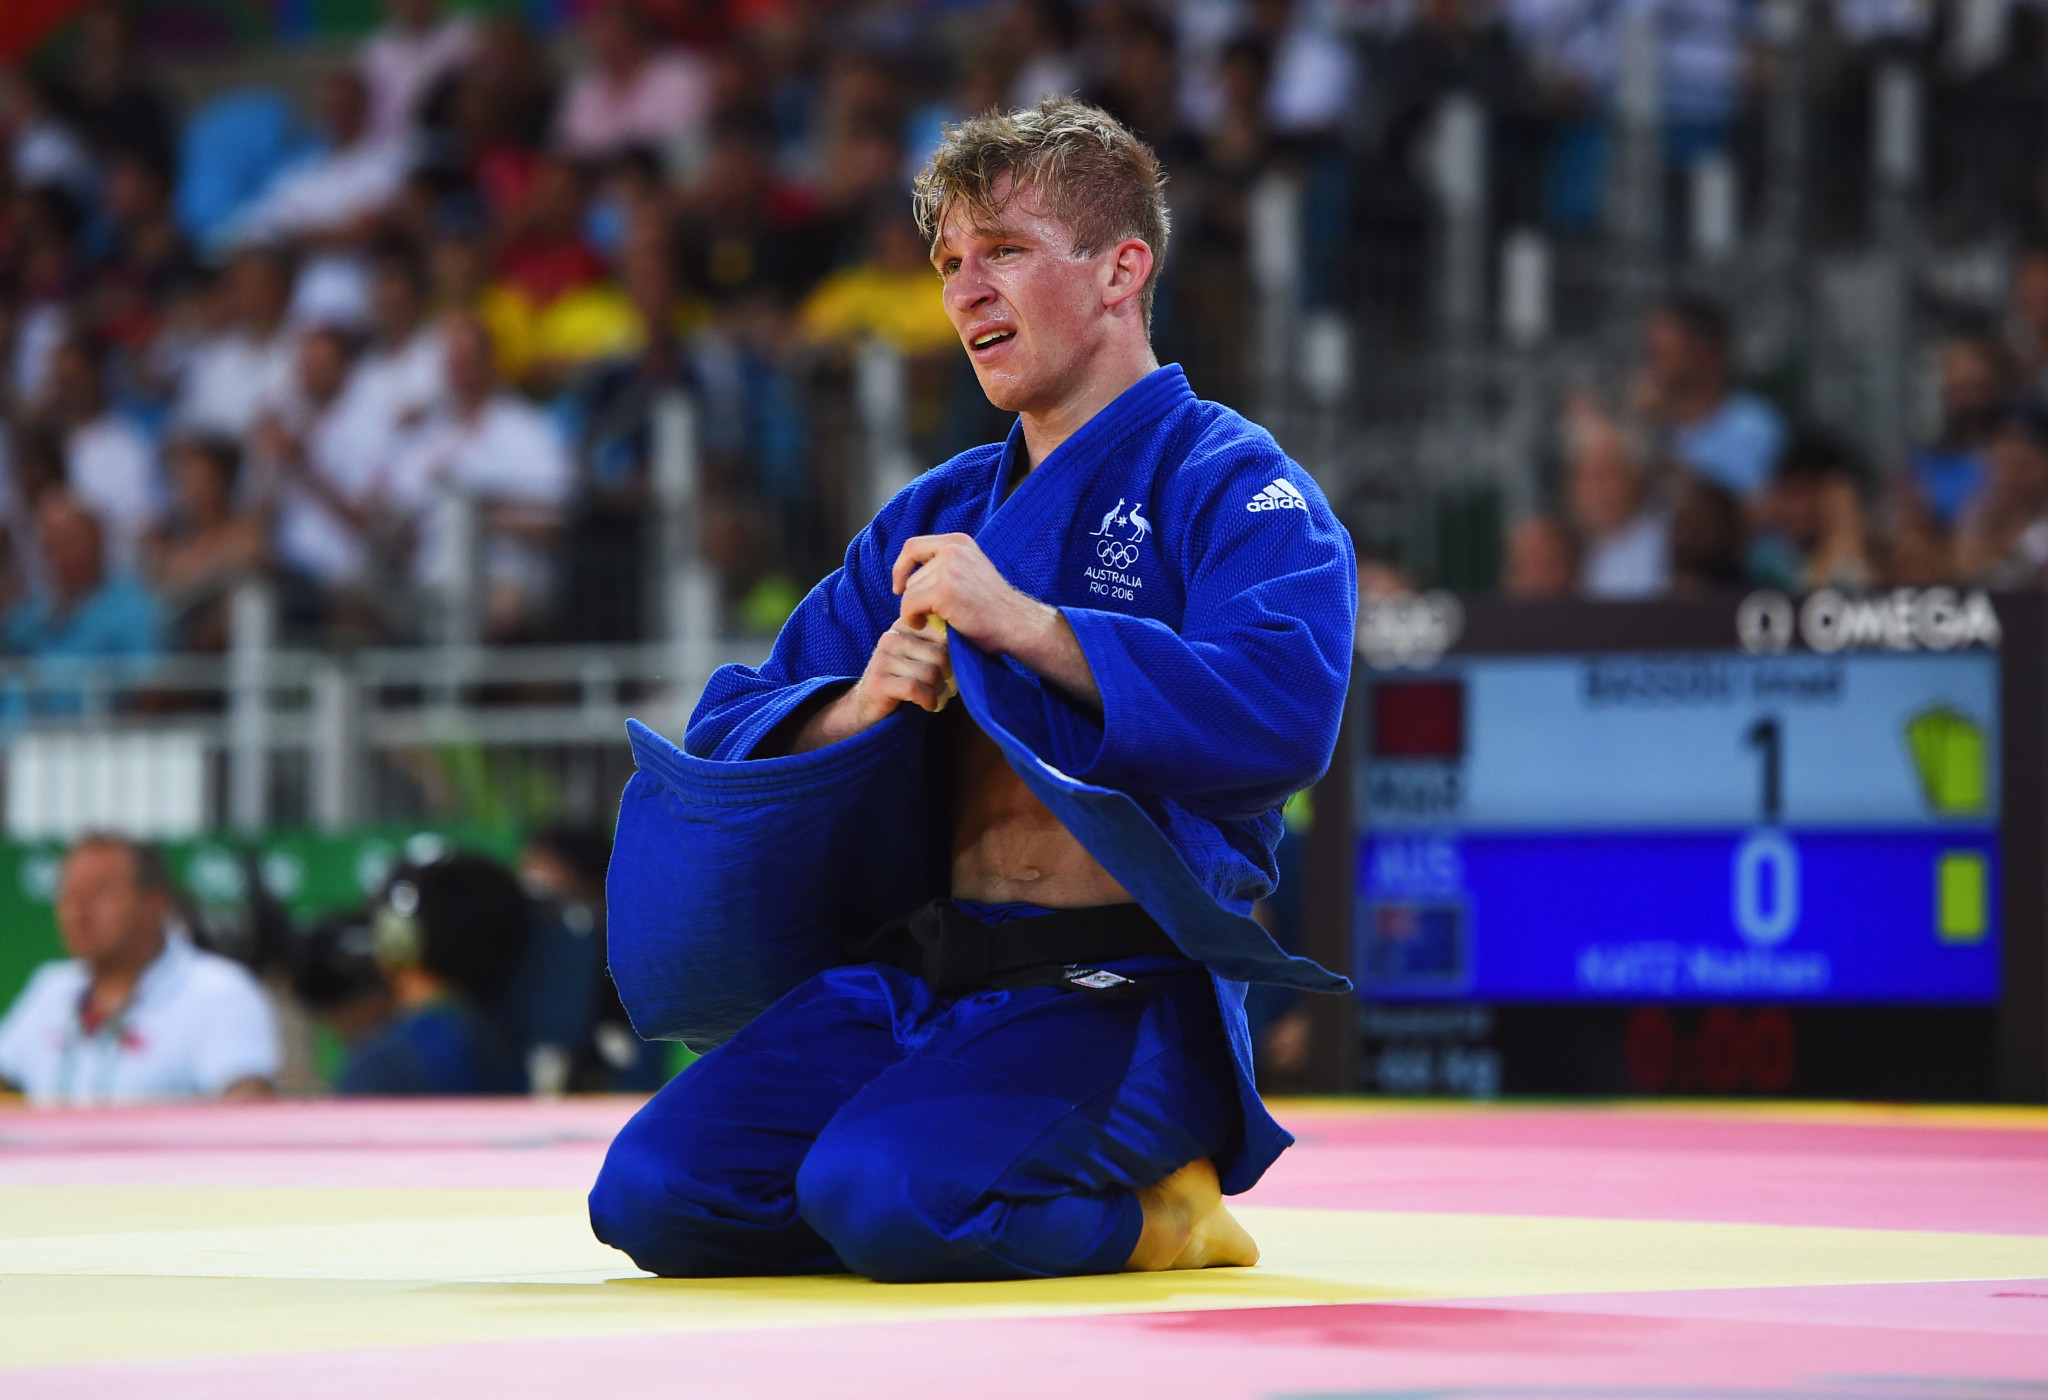 Nathan Katz represented Australia in judo at Rio 2016 ©Getty Images